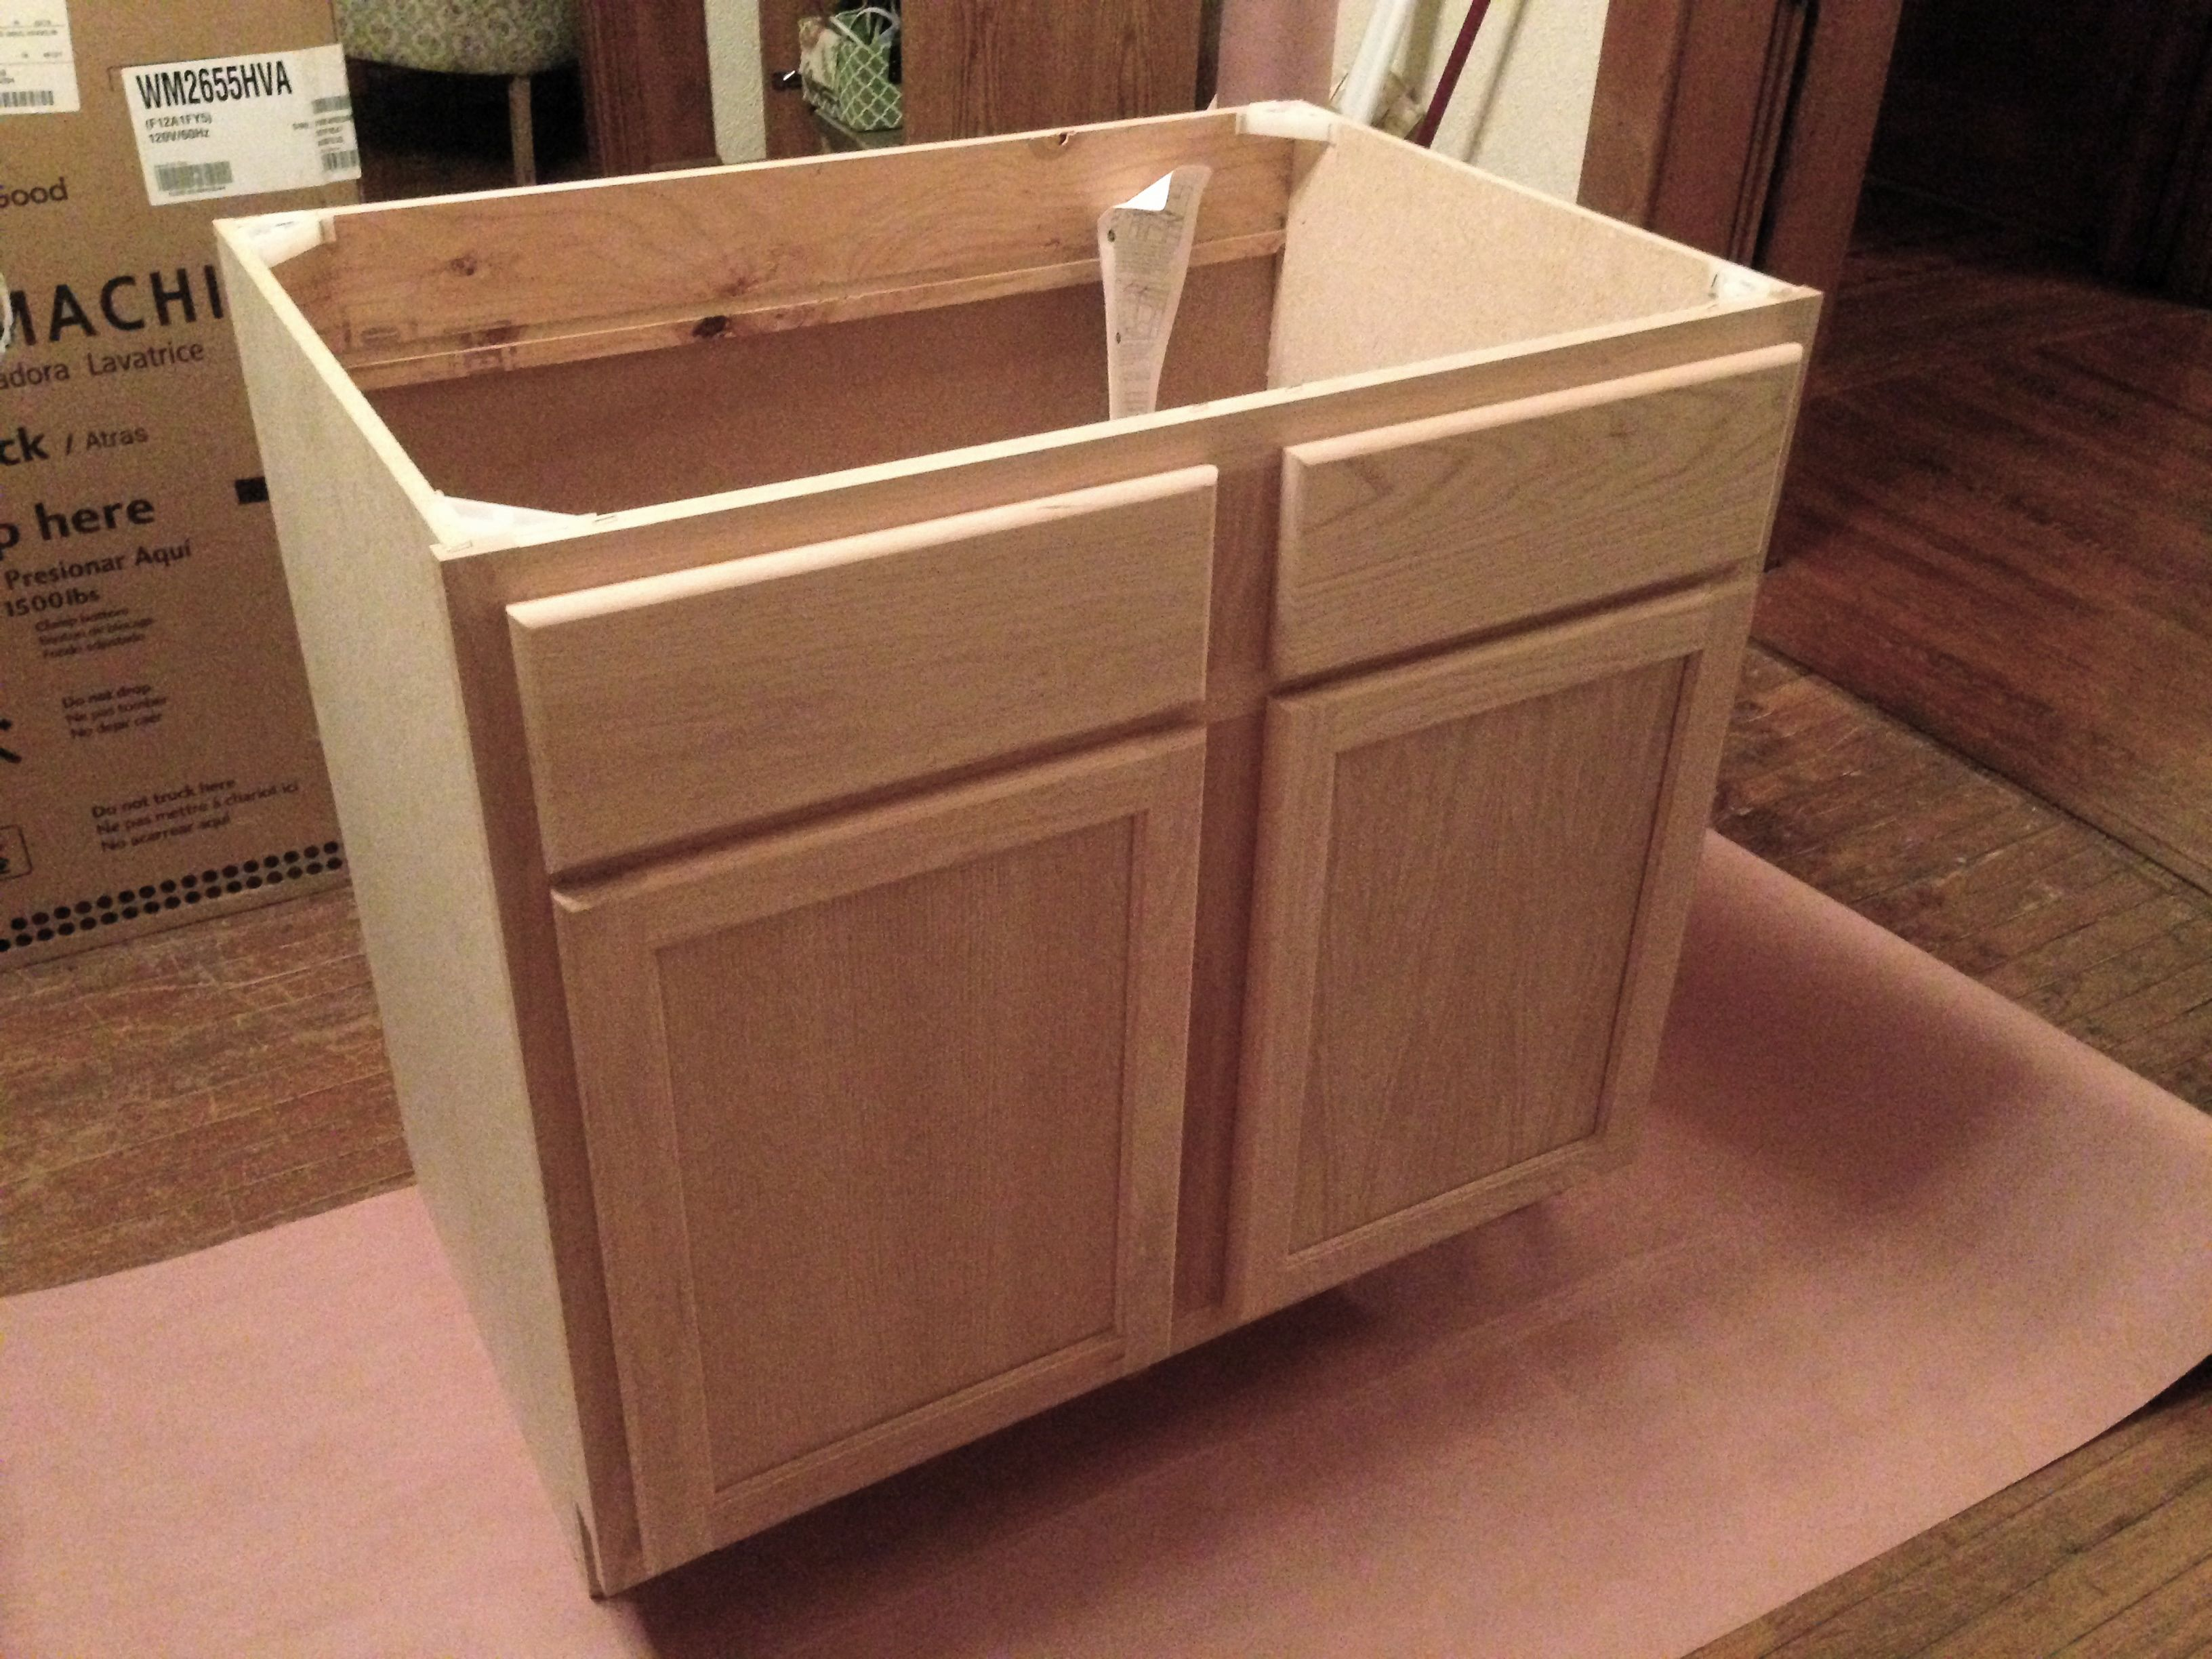 Build cabinet plans laundry rooms diy pdf diy craft Cabinets plans